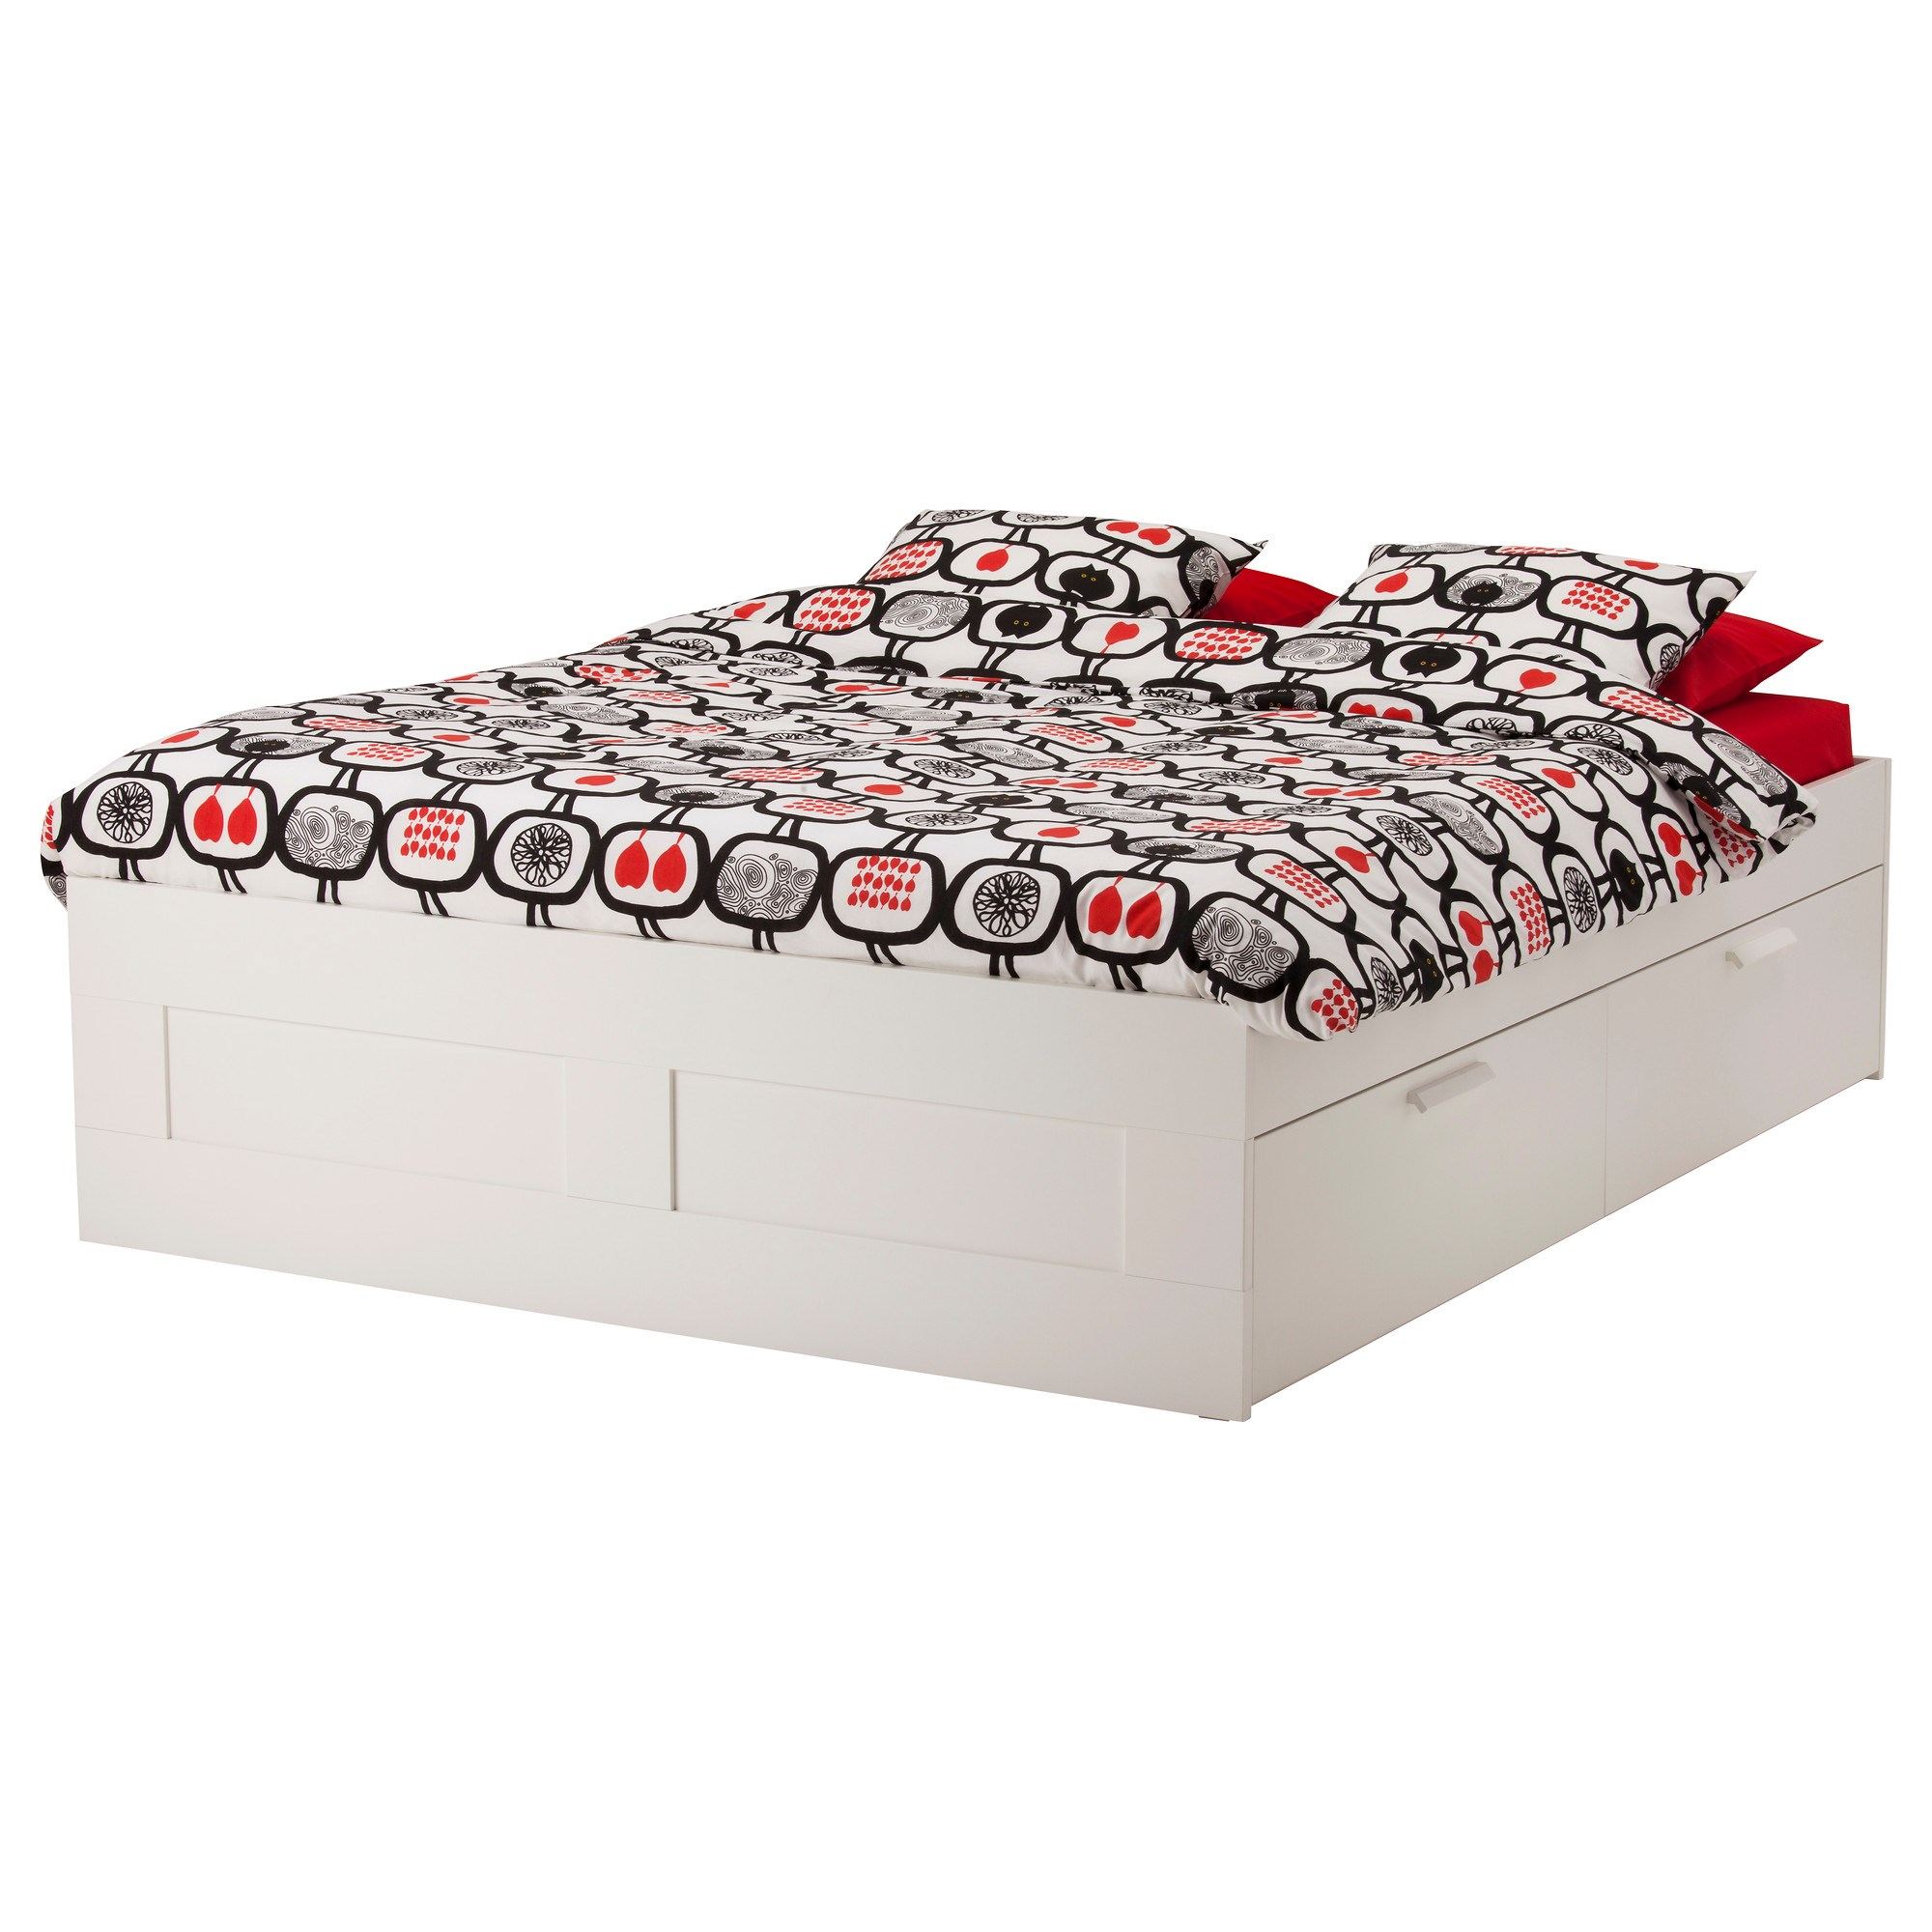 BRIMNES/LURÖY double bed with 4 storage boxes white 160x200 cm ...